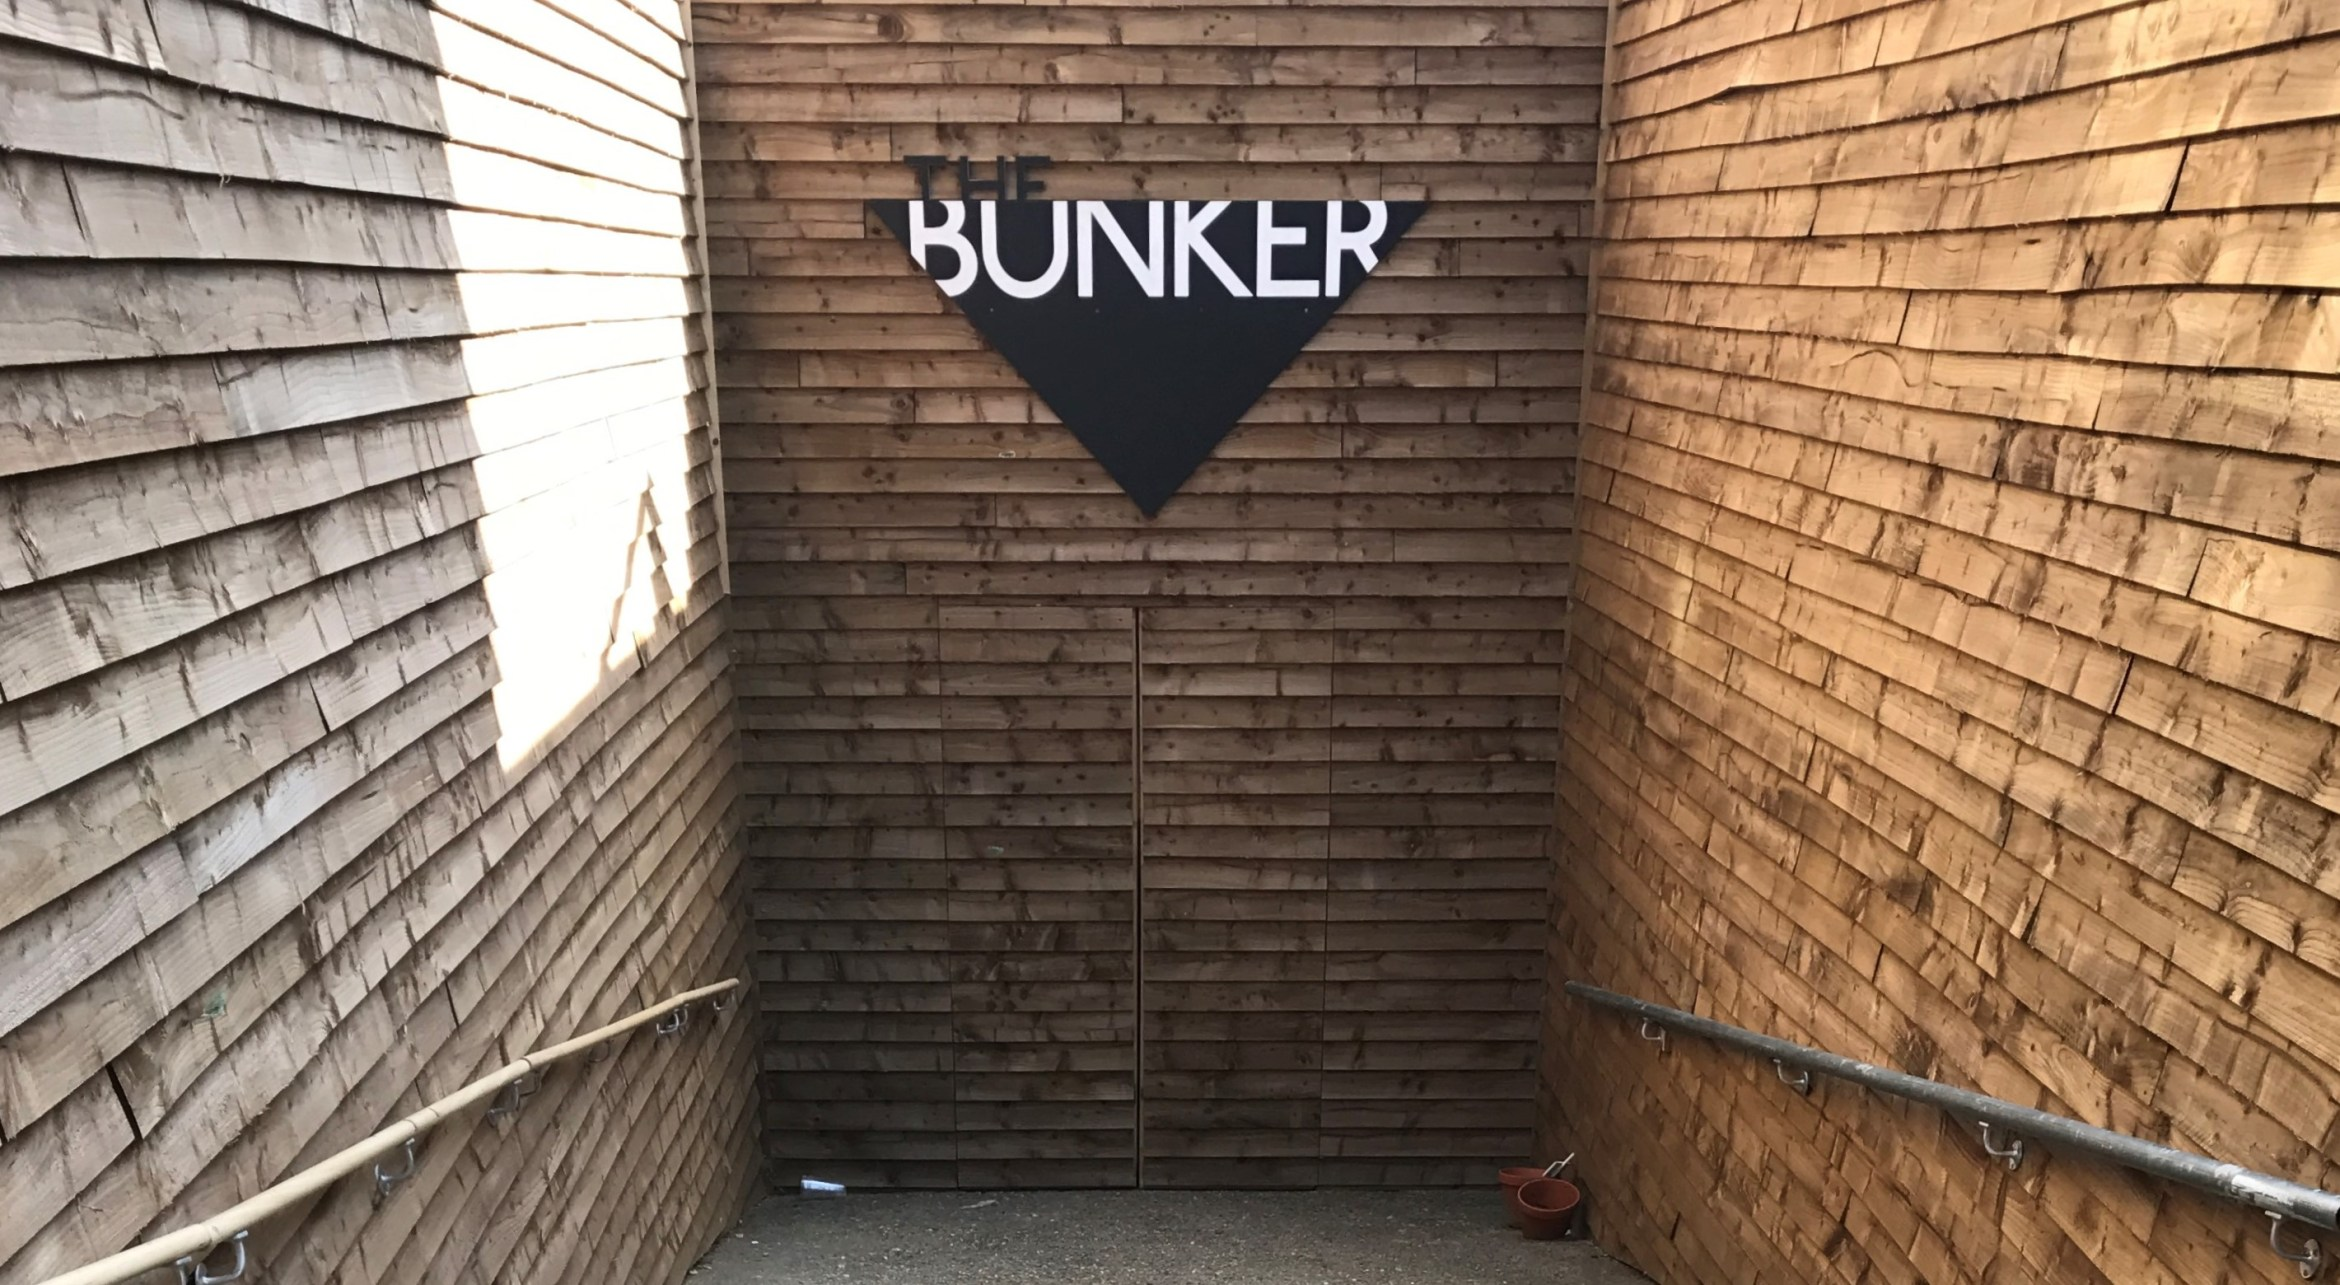 The Bunker 2017 (courtesy of The Bunker Theatre)